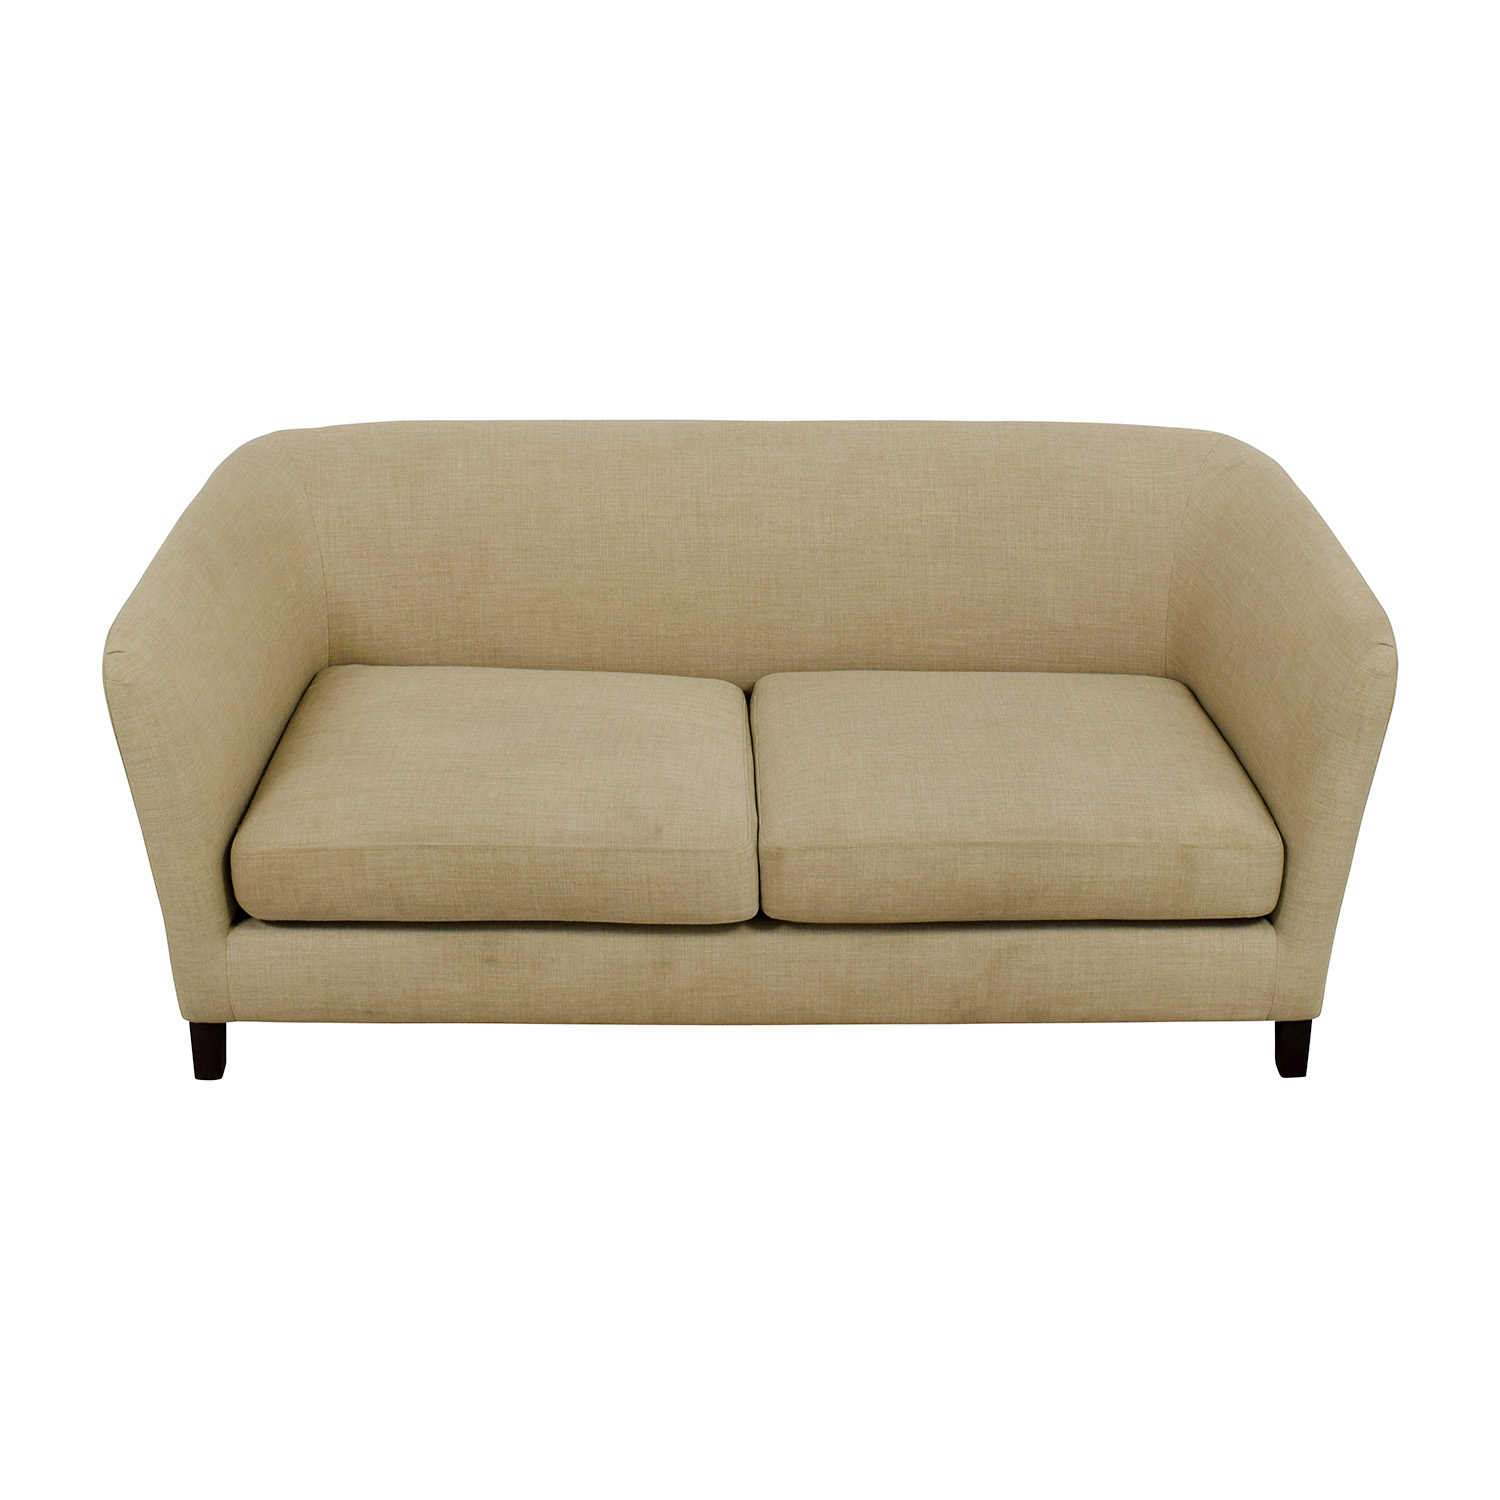 Crate & Barrel Crate & Barrel Mid-Century Two-Seat Neutral Sofa Sofas